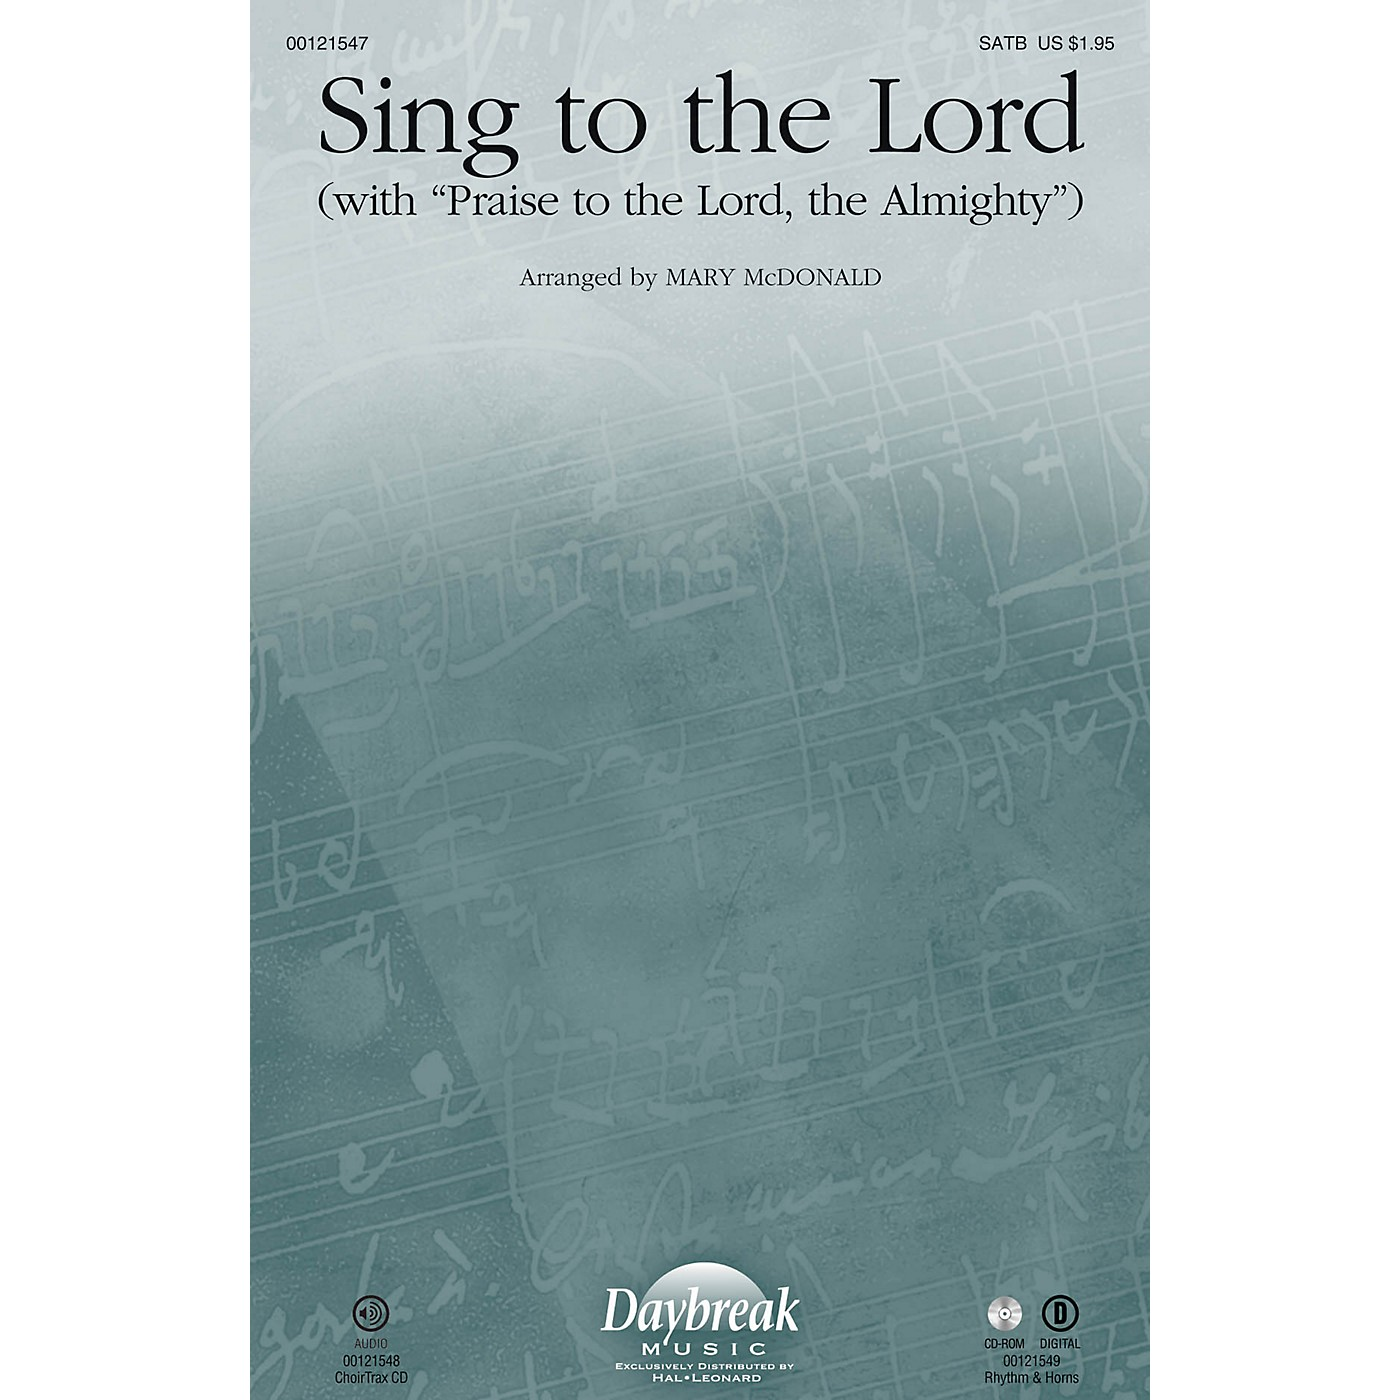 Daybreak Music Sing to the Lord RHYTHM/HORN SECTION by Sandi Patty Arranged by Mary McDonald thumbnail